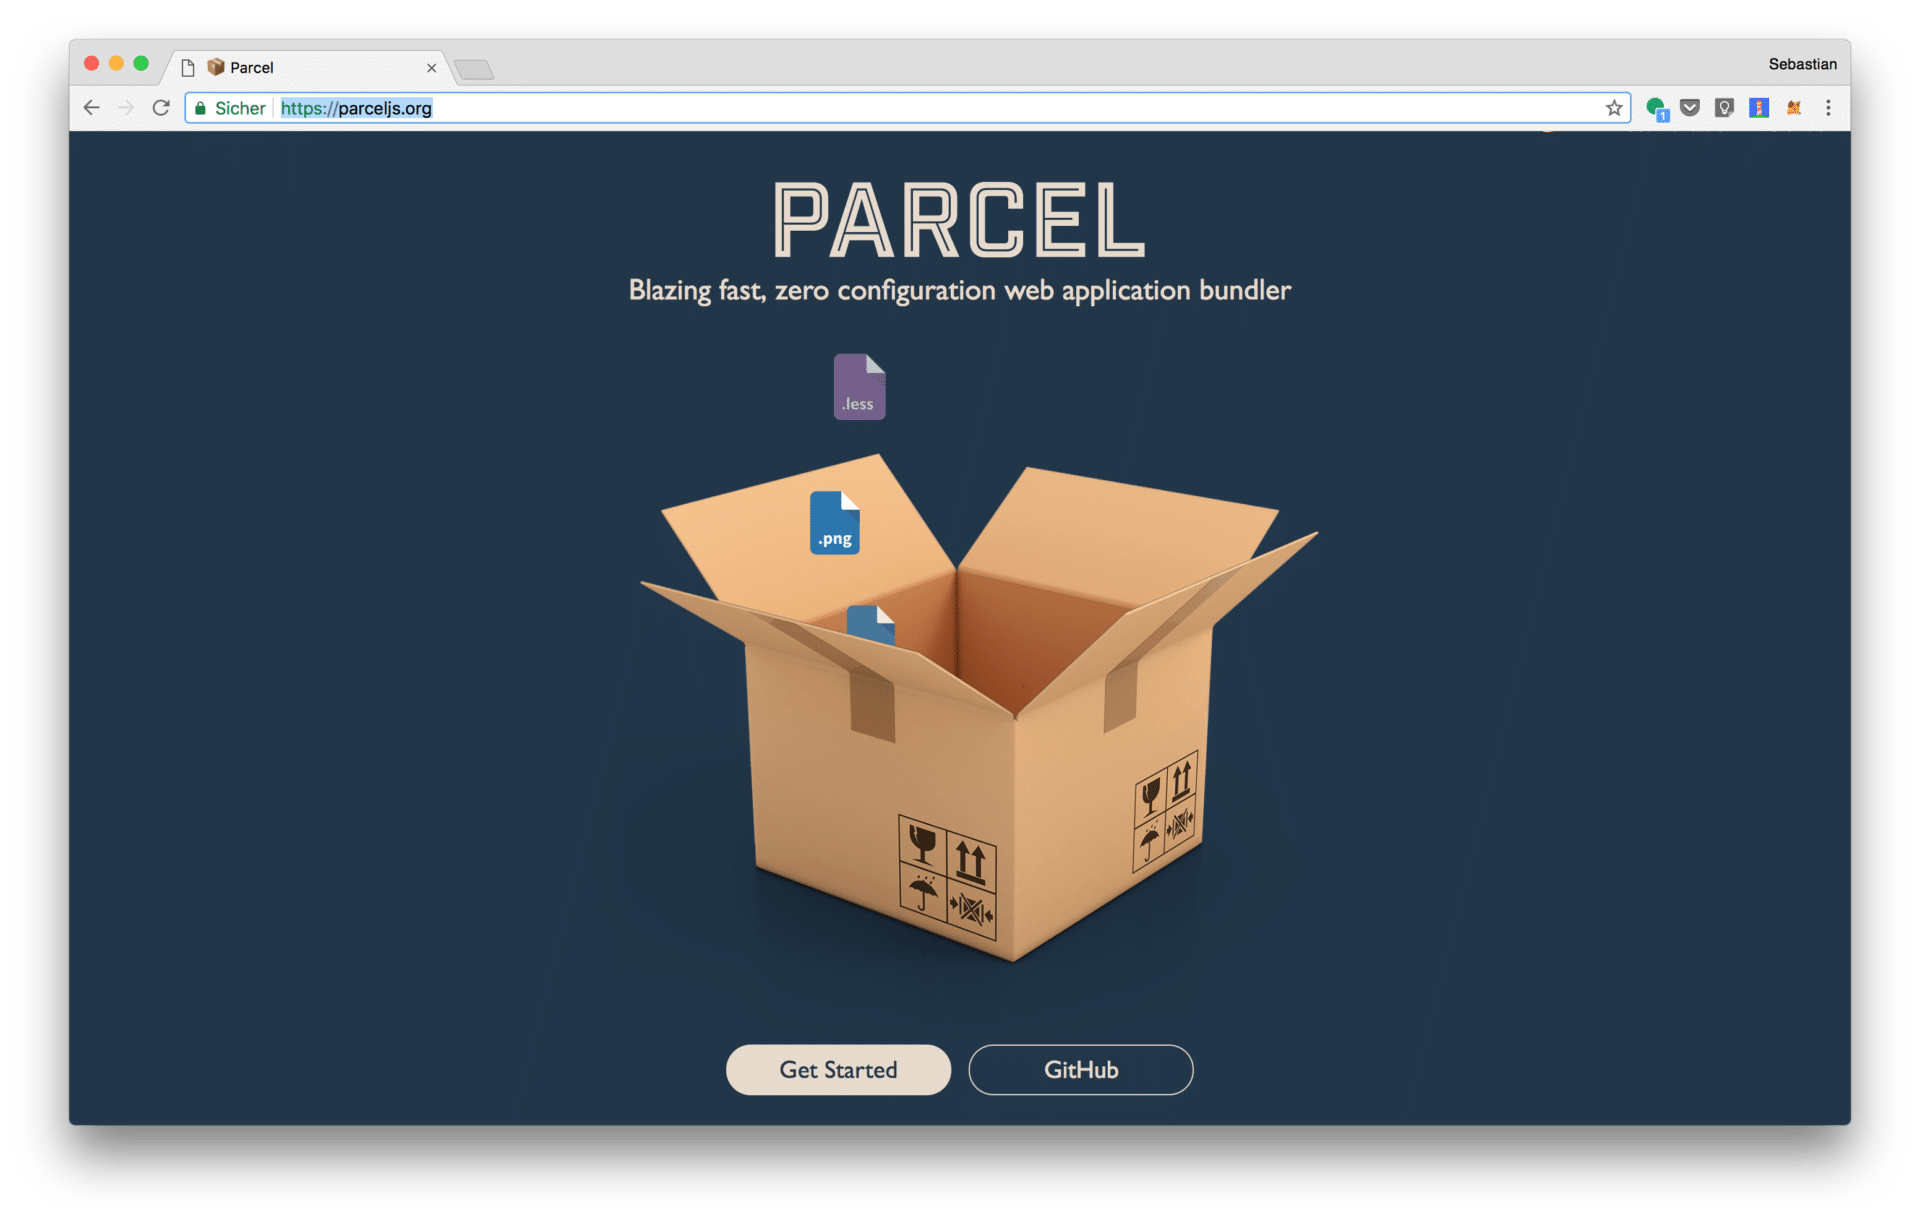 Getting Started With Parcel - Next Generation Web App